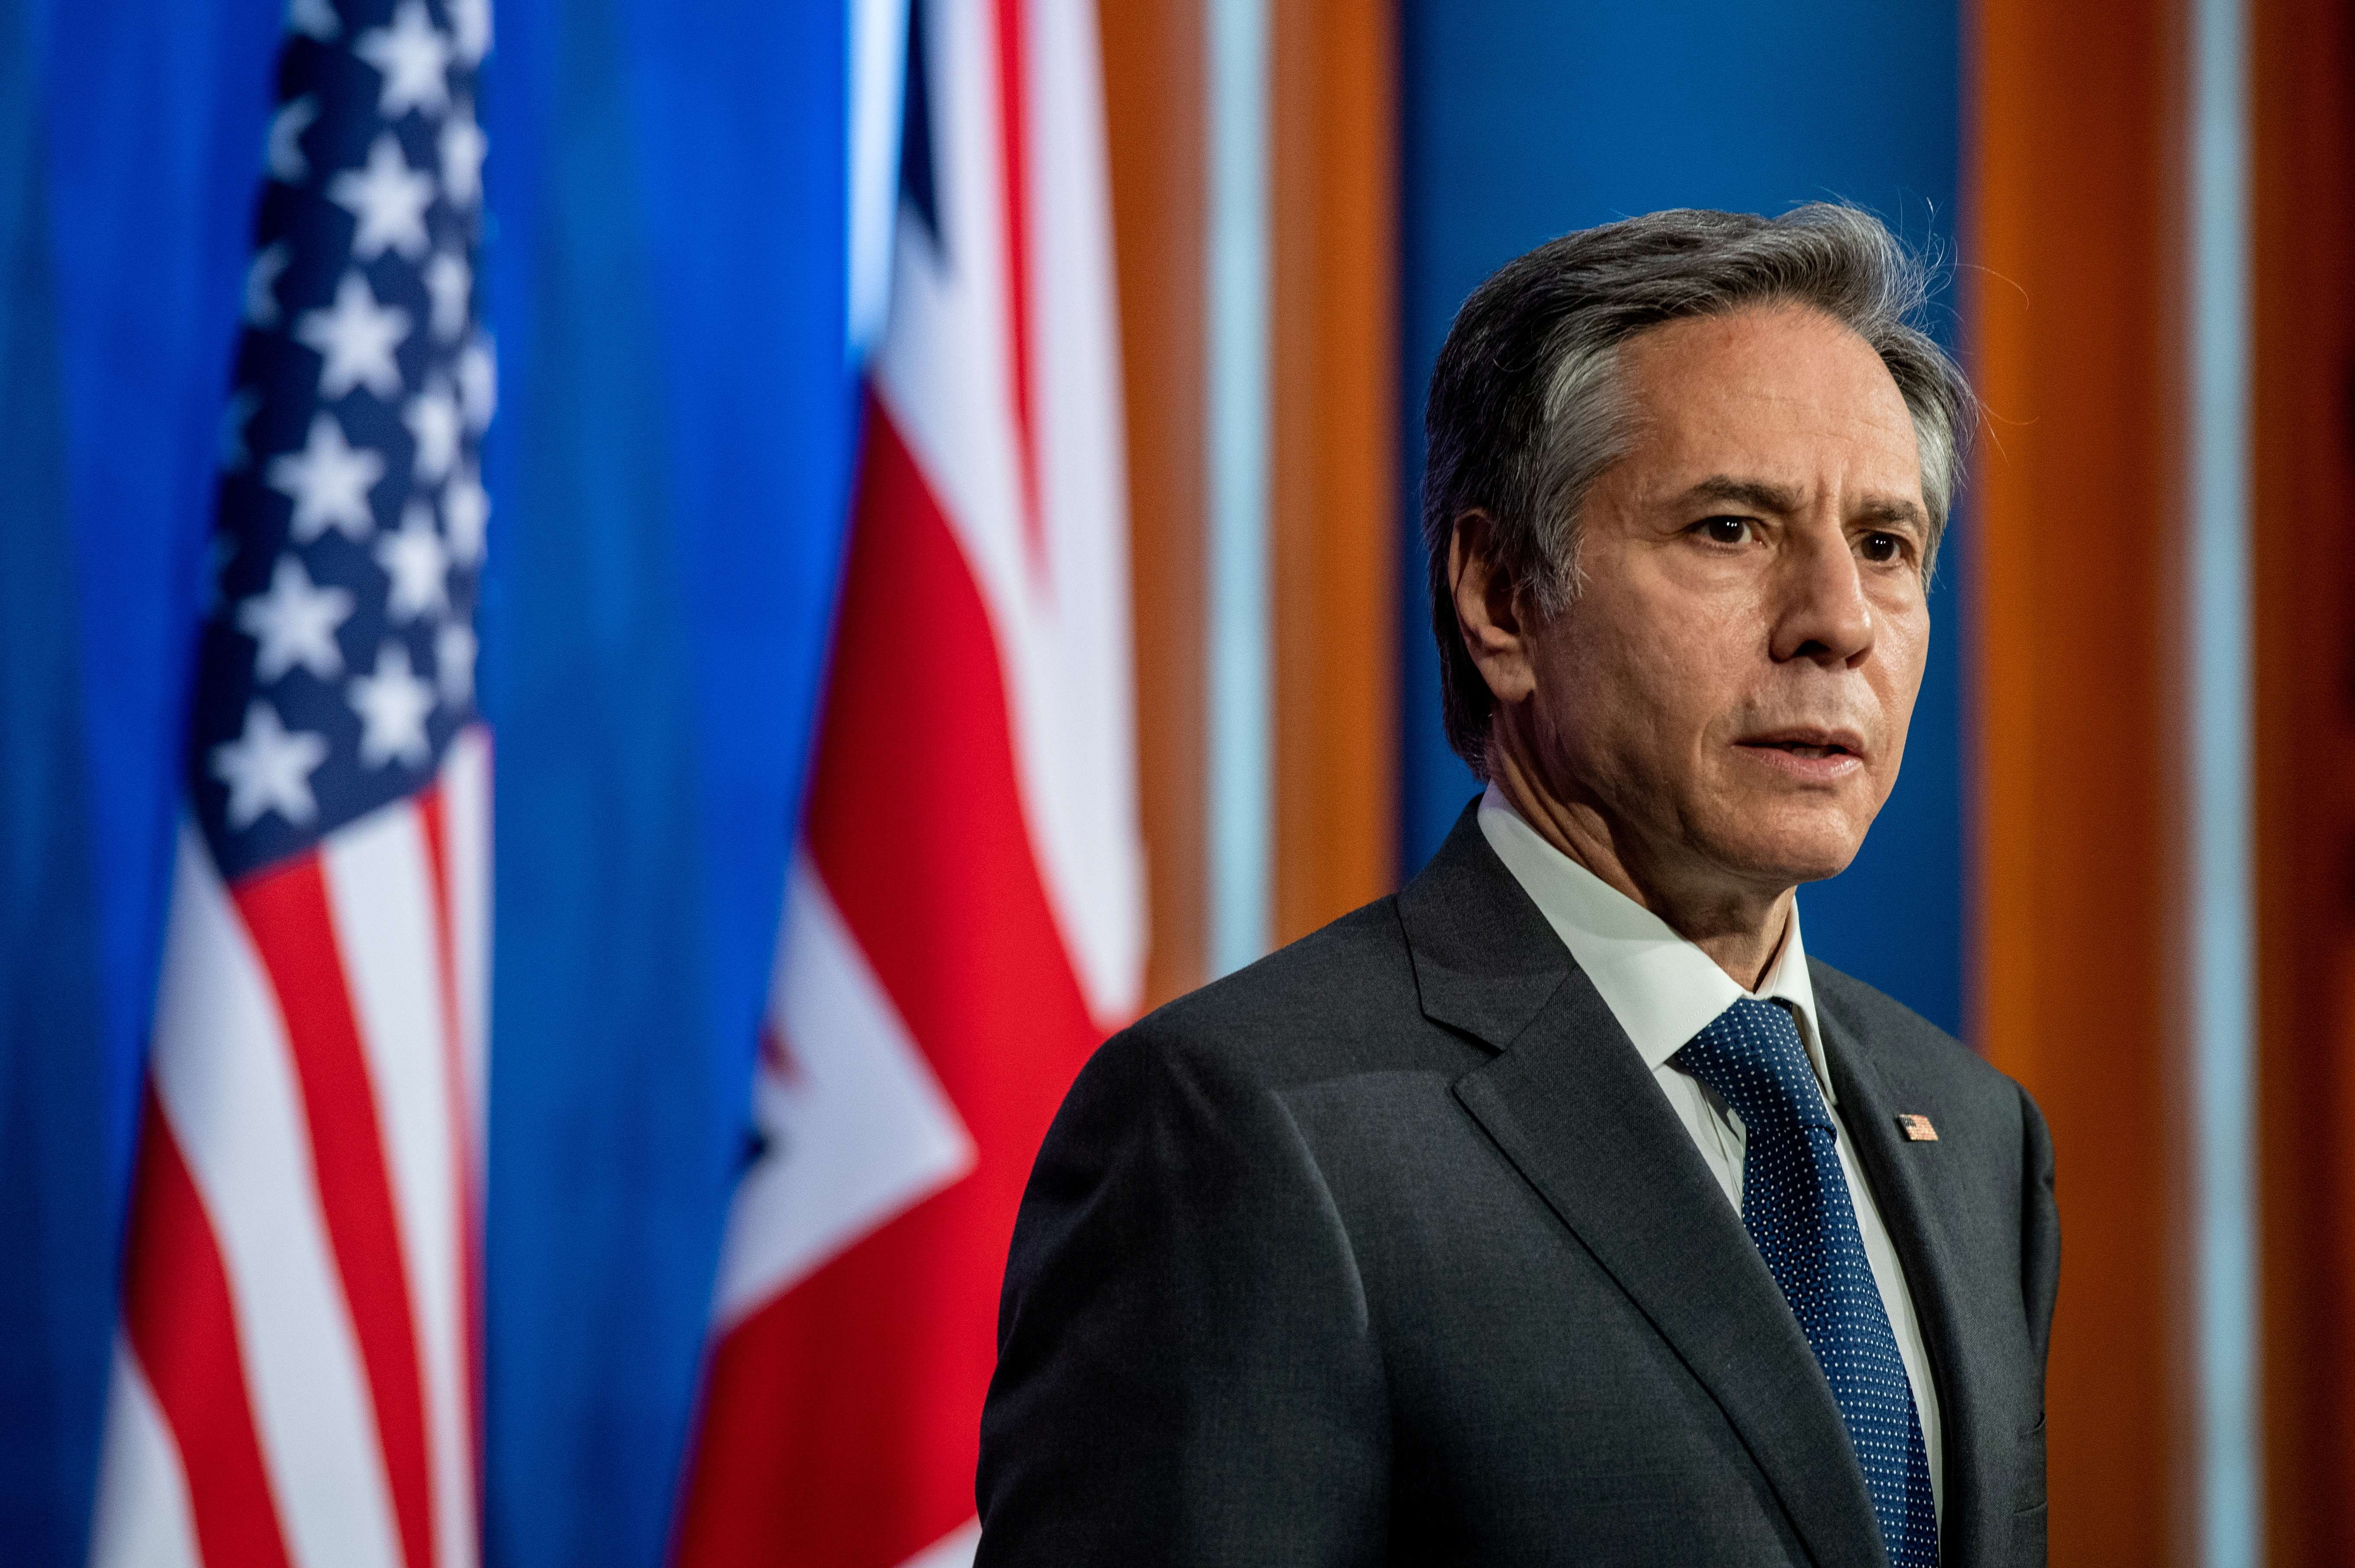 U.S. Secretary of State Antony Blinken holds a joint news conference with his British counterpart at Downing Street following their bilateral meeting in London, Britain May 3, 2021 during the G7 foreign ministers meeting. Chris J Ratcliffe/Pool via REUTERS/File Photo